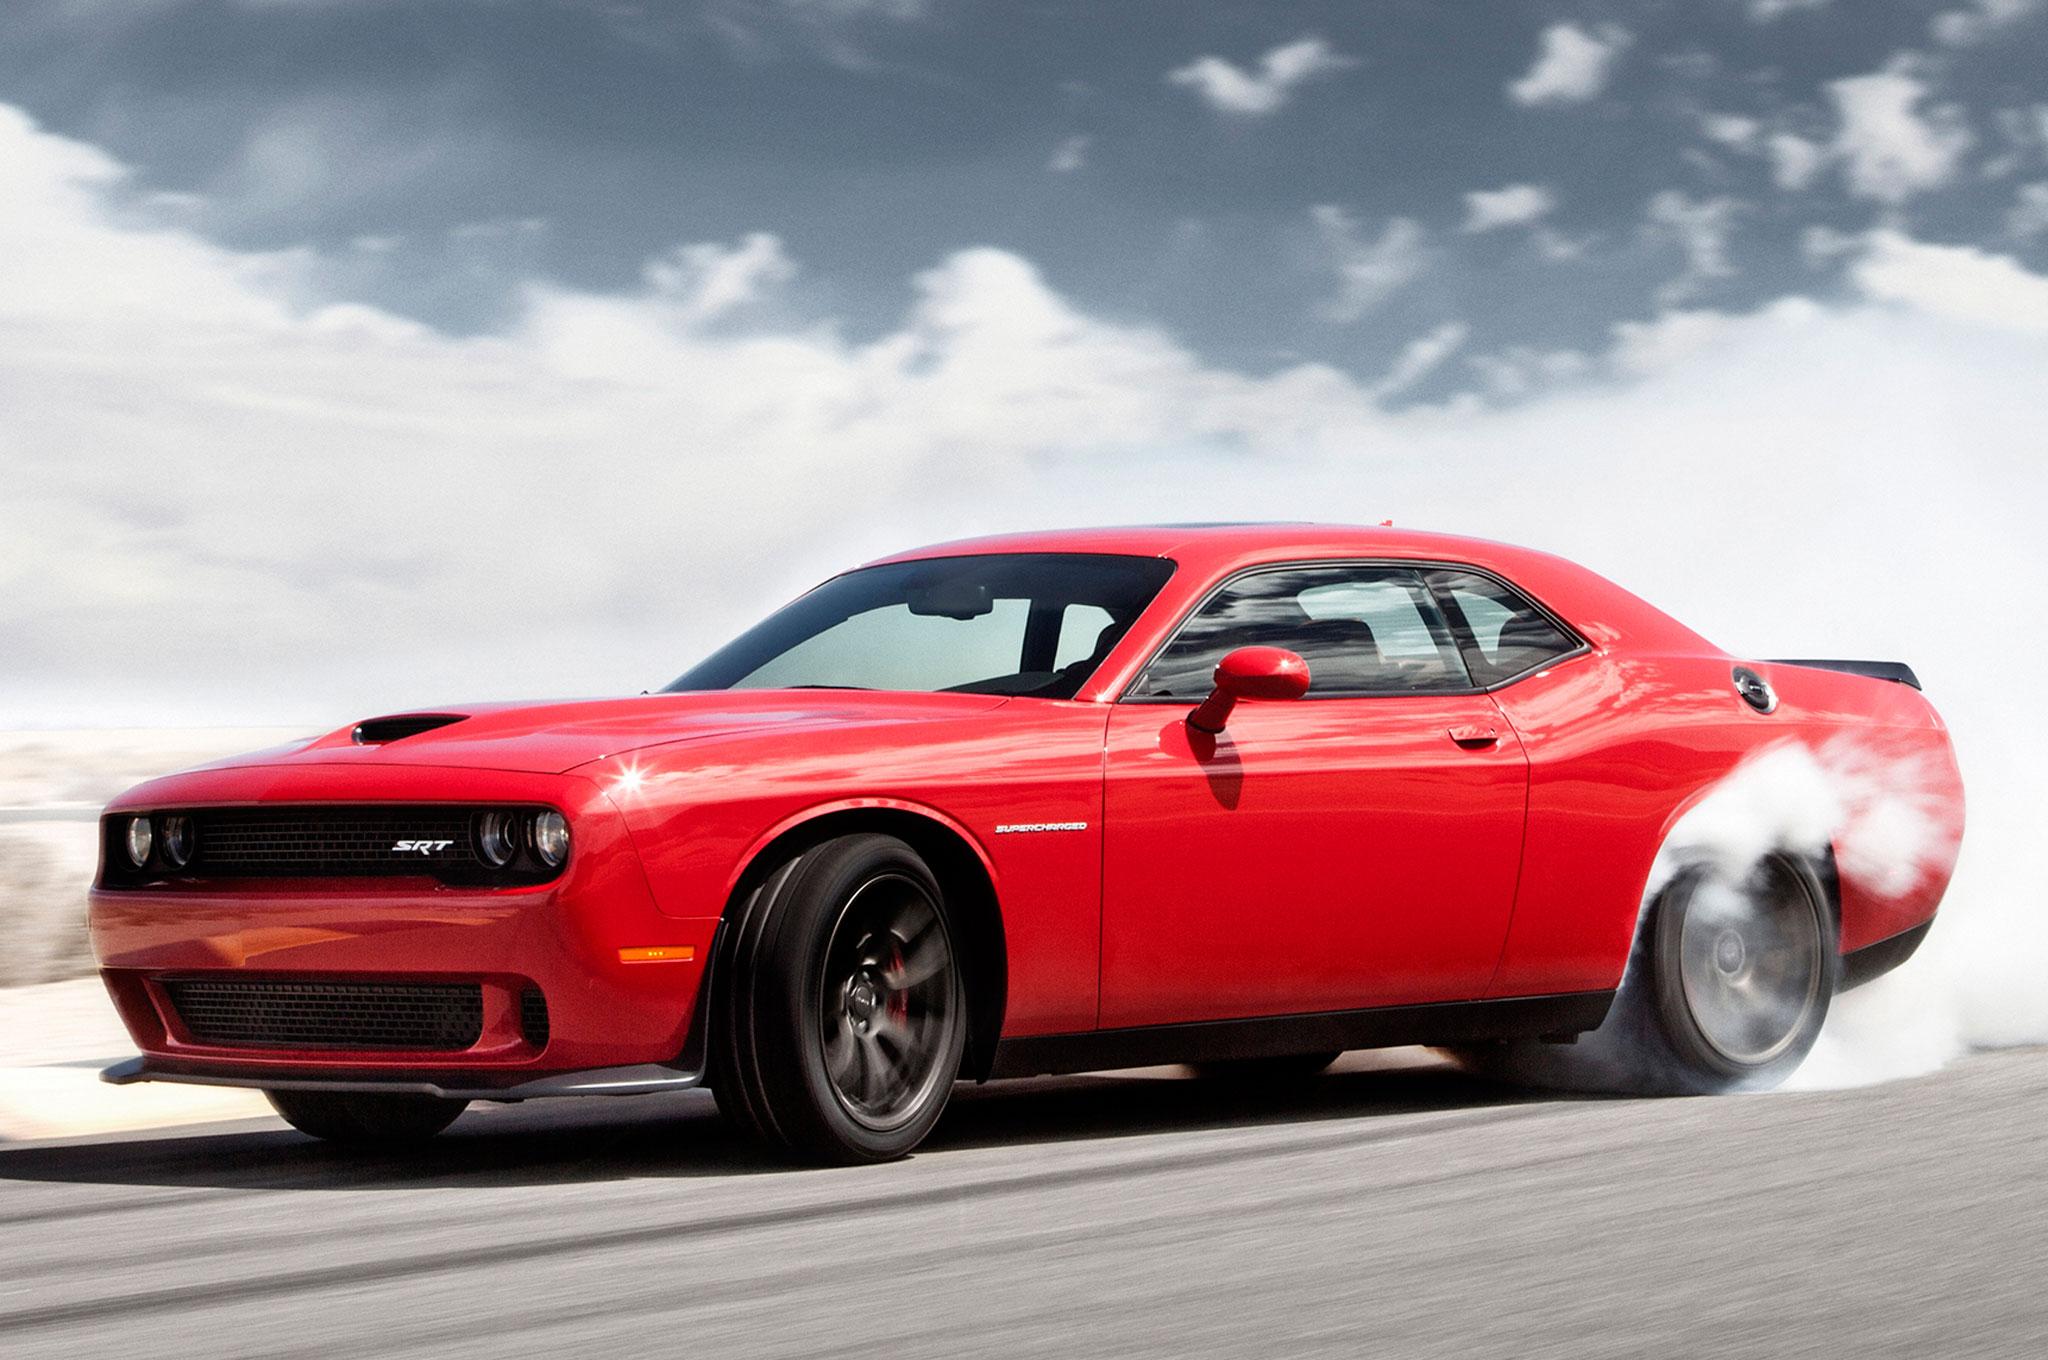 2015 Dodge Challenger Srt Hellcat Automatic Epa Rated At 13 22 Mpg